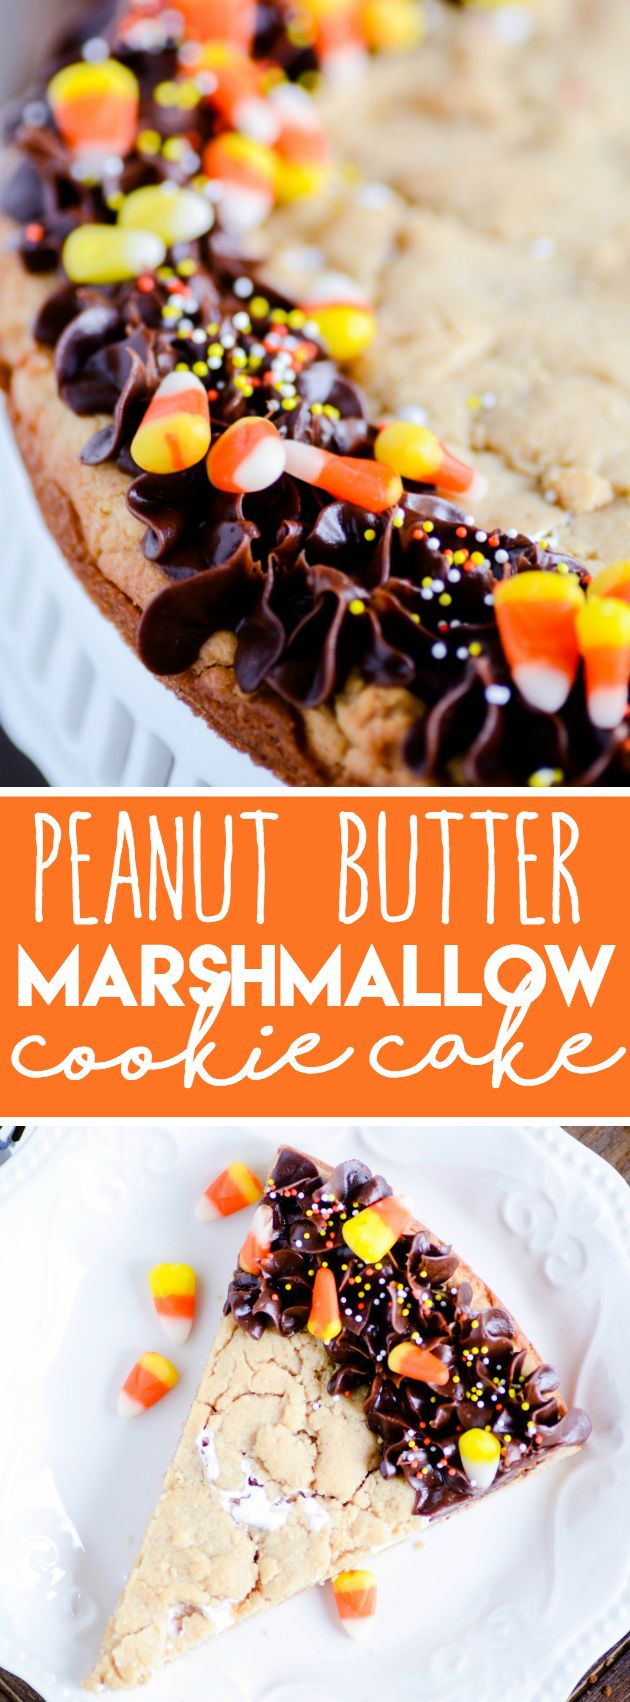 Peanut Butter Marshmallow Cookie Cake http://www.somethingswanky.com/candy-cookie-cake/?utm_campaign=coschedule&utm_source=pinterest&utm_medium=Keat%27s%20Eats&utm_content=Peanut%20Butter%20Marshmallow%20Cookie%20Cake